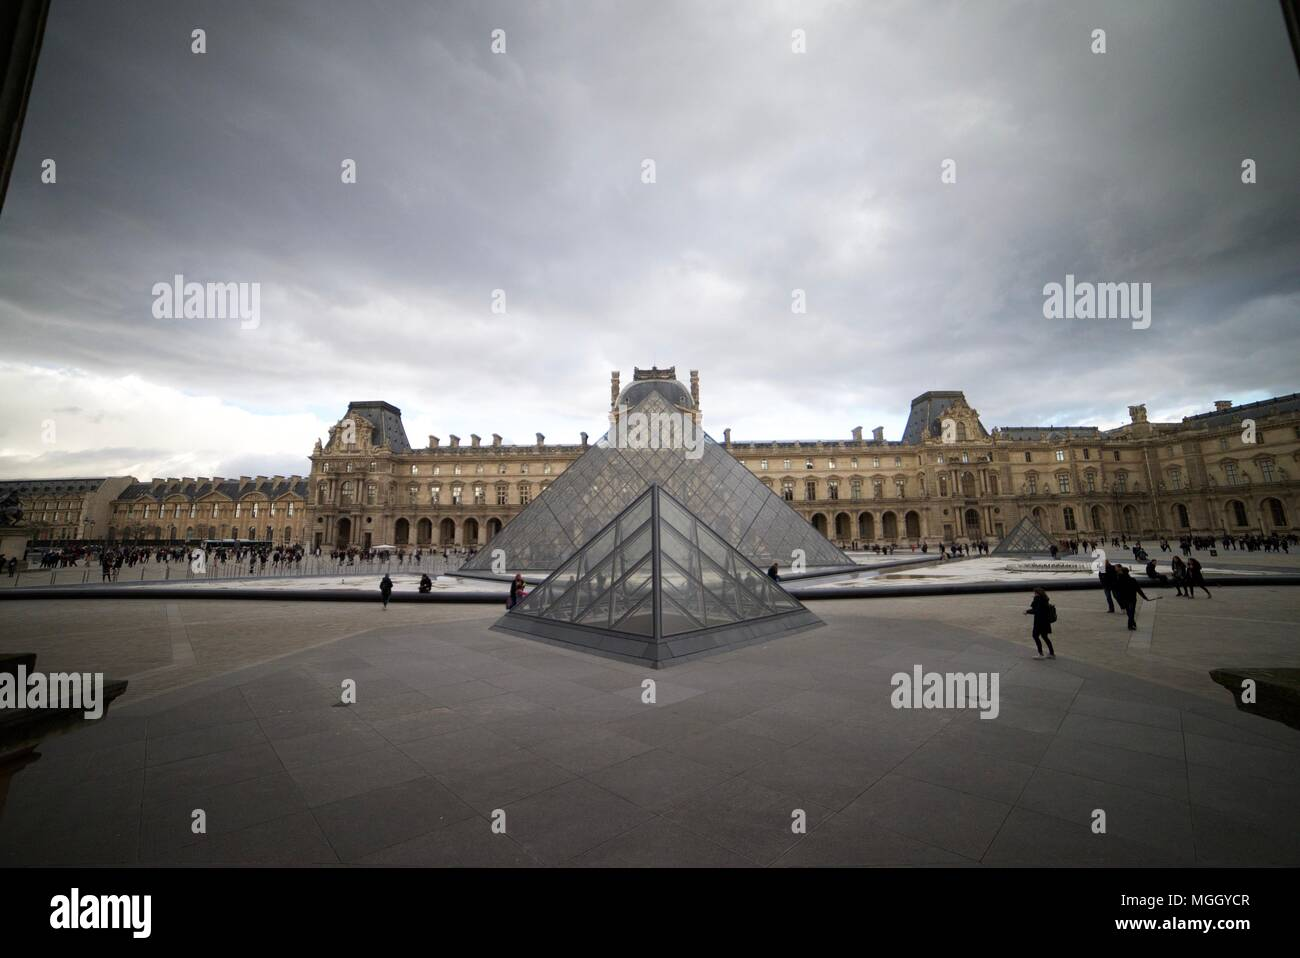 The Louvre Palace and Museums (Glass pyramid's outside La Louvre, Paris) - Stock Image